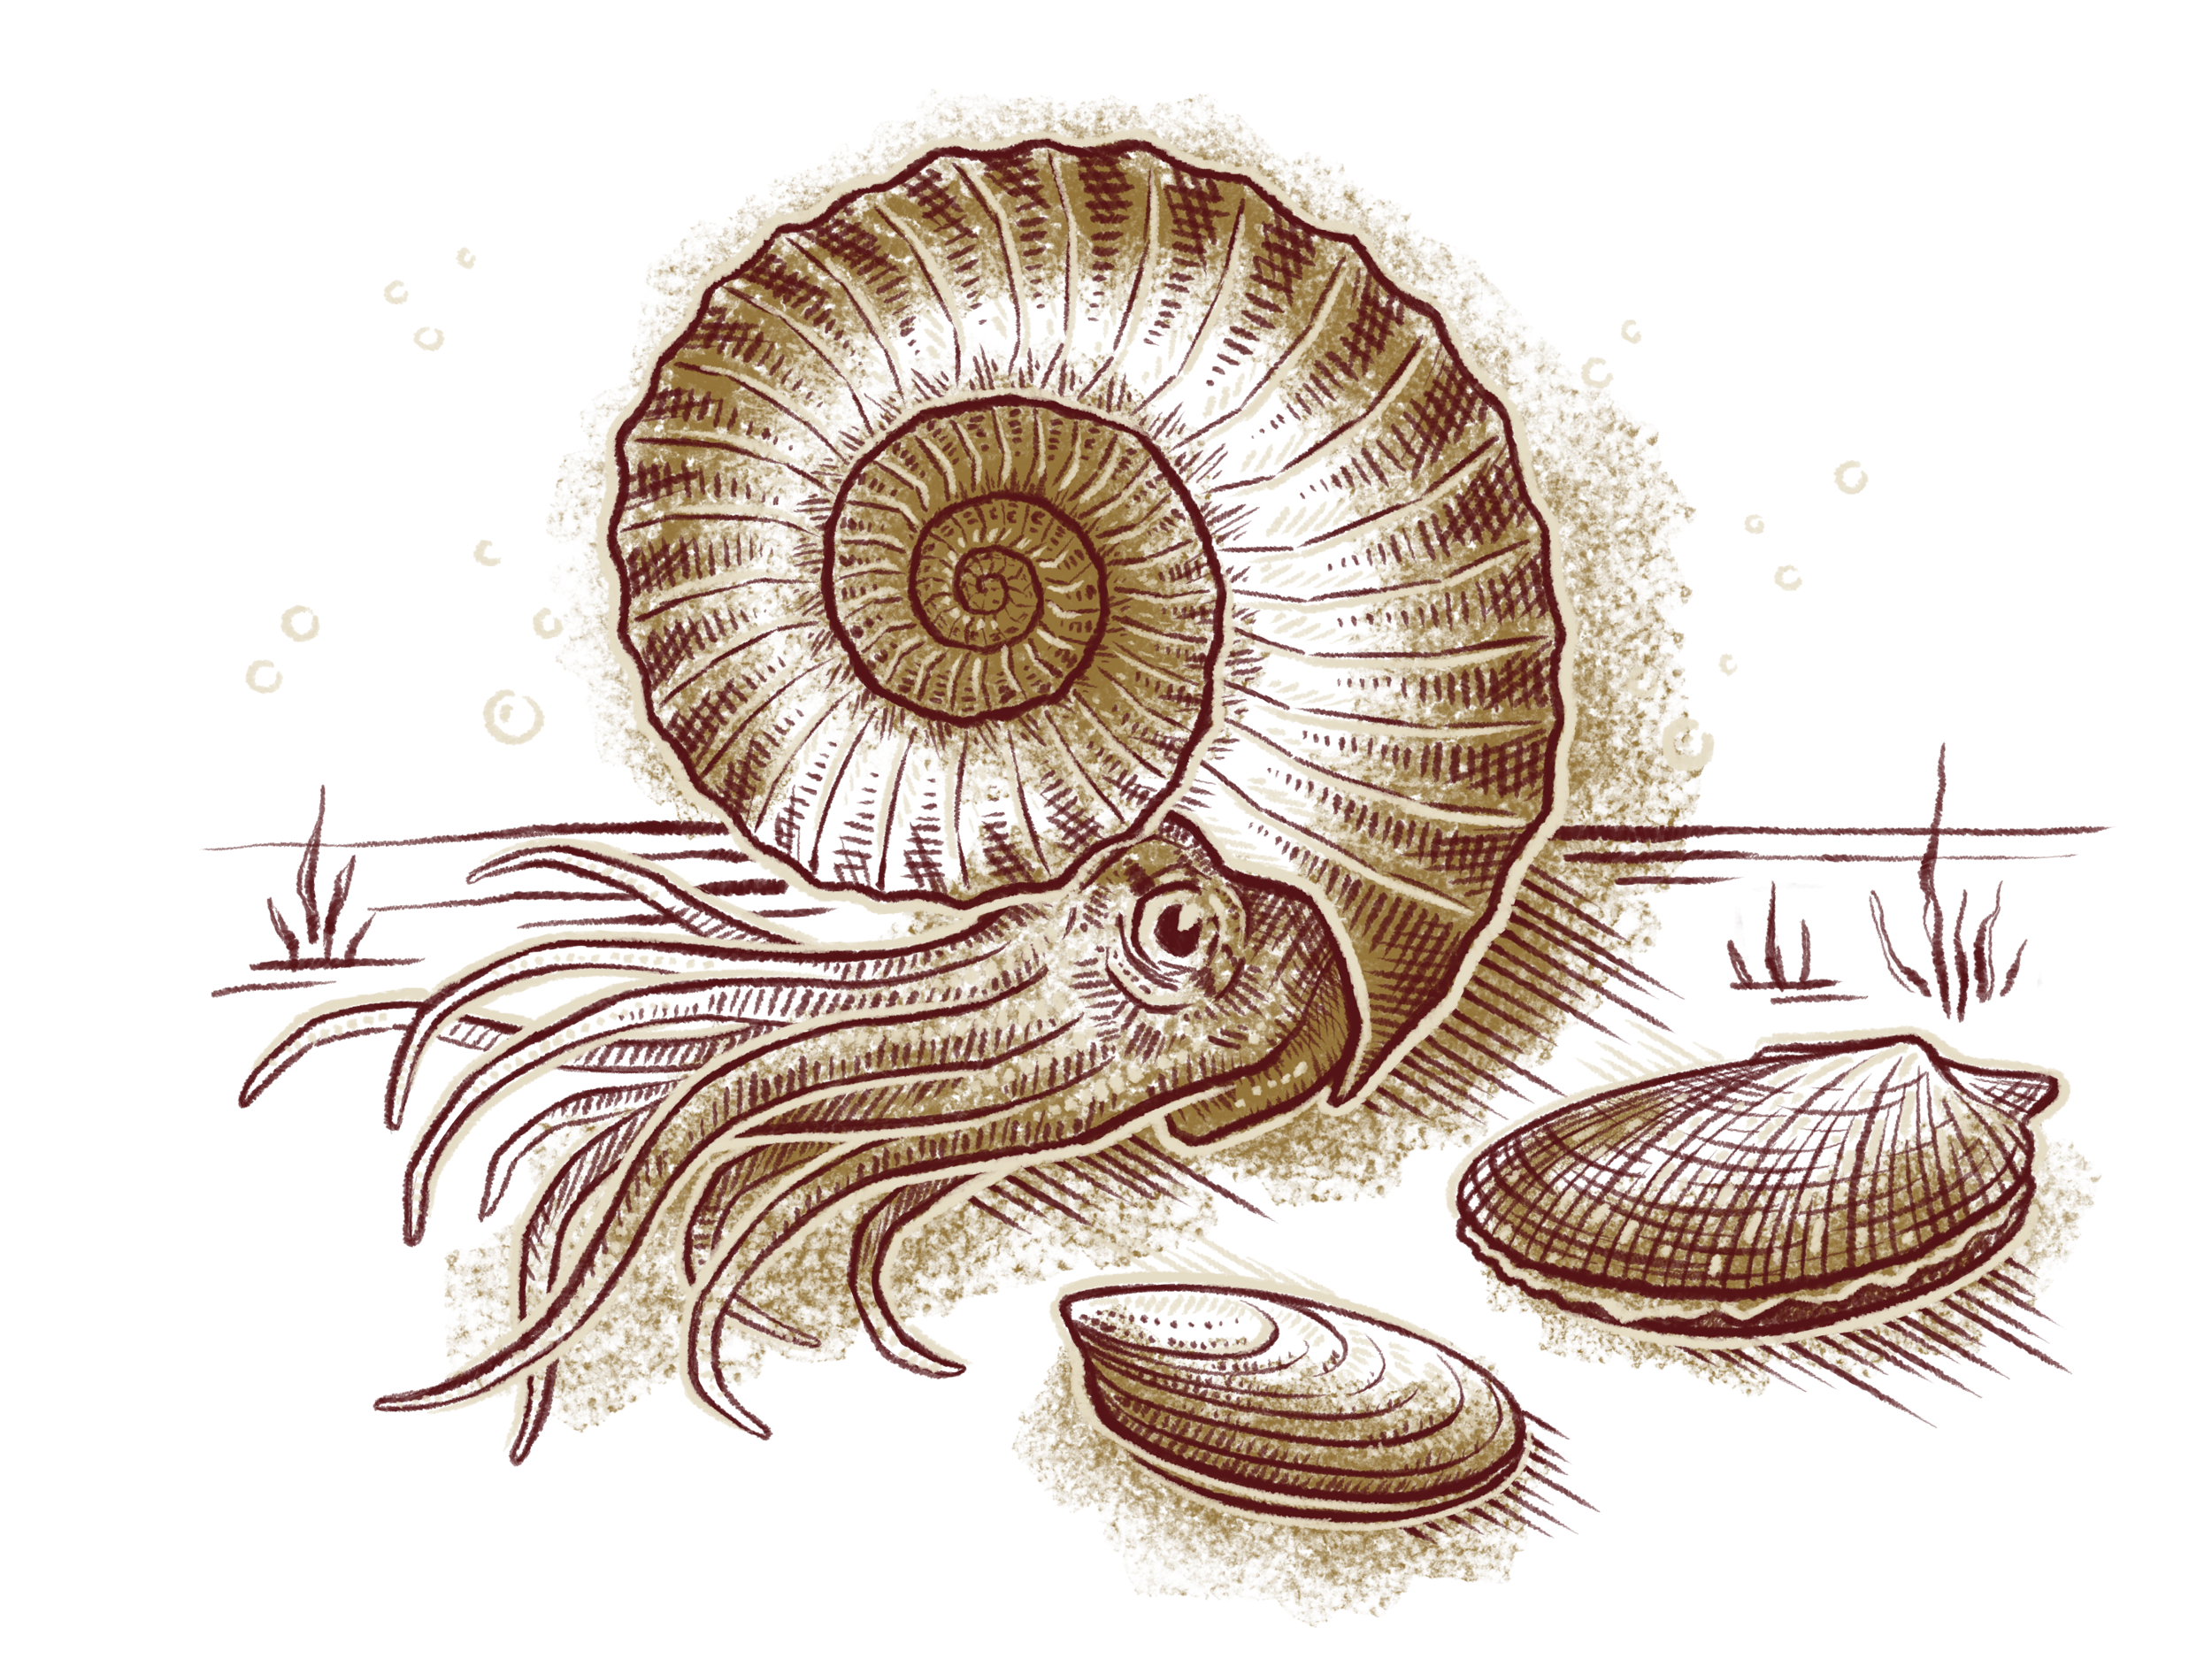 If you casted out a fishing line into the Triassic seas, you'd probably catch a species of ammonite, says Ritterbush. While this abundant group survived into the Cretaceous, the ammonites were hit hard during the End Triassic mass extinction along with other shelled marine animals. Illustration by Franz Anthony